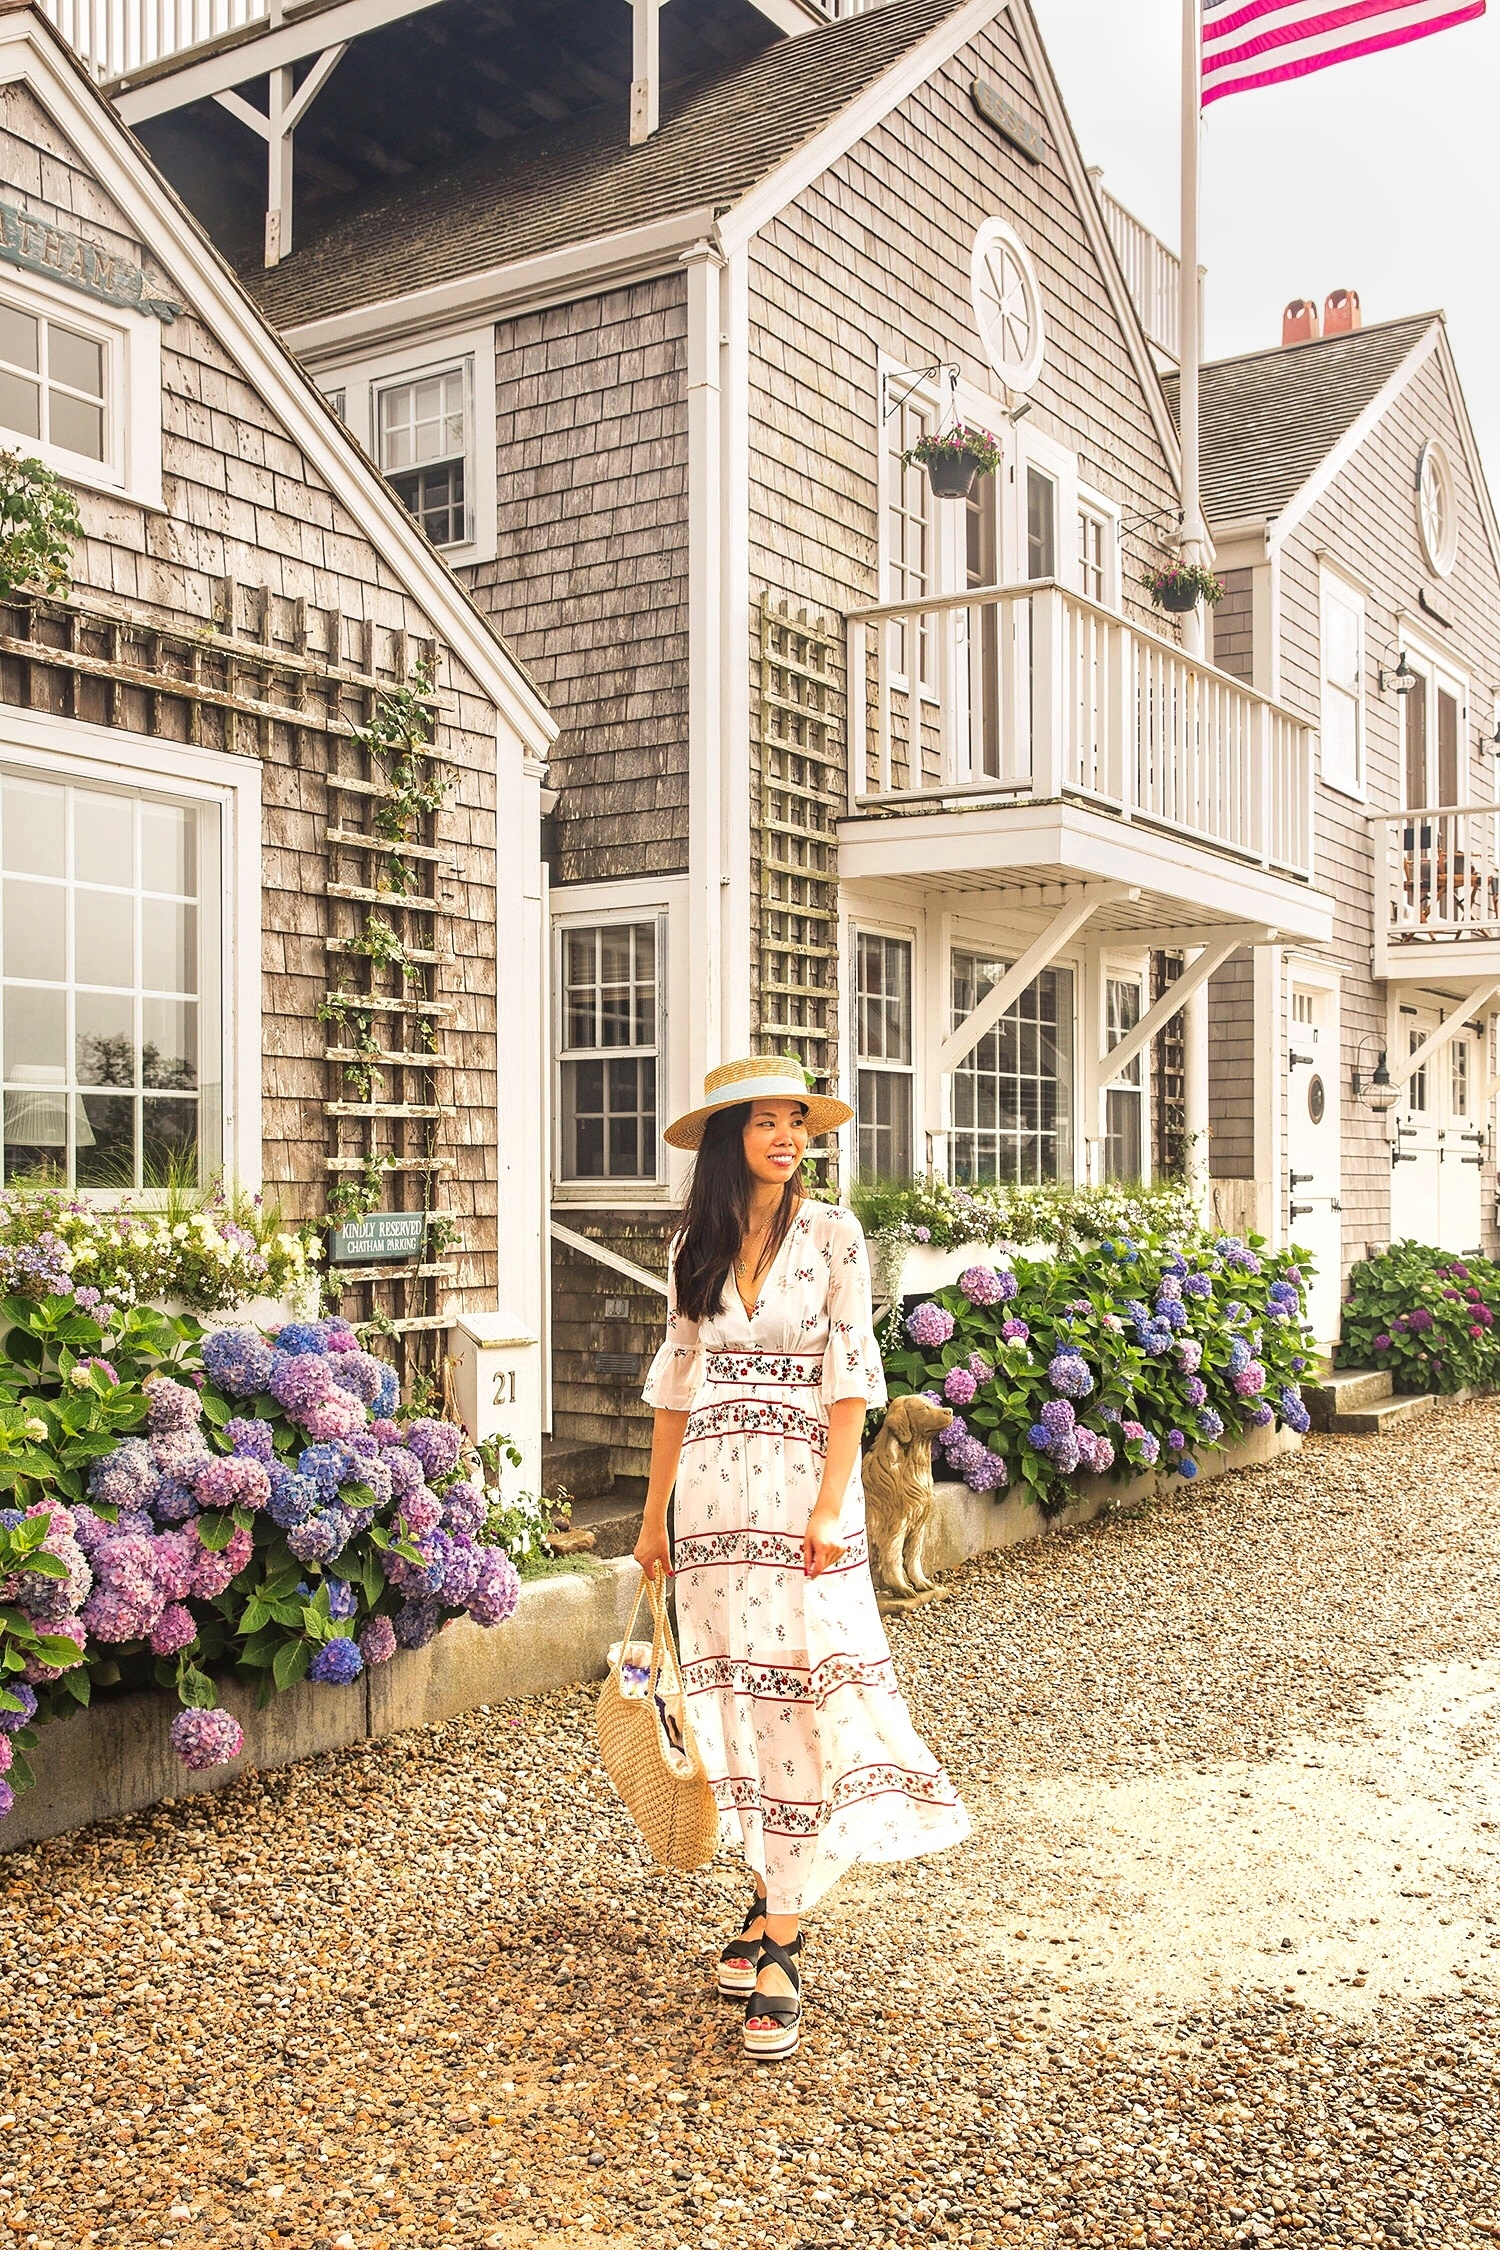 Best Things to Do in Nantucket